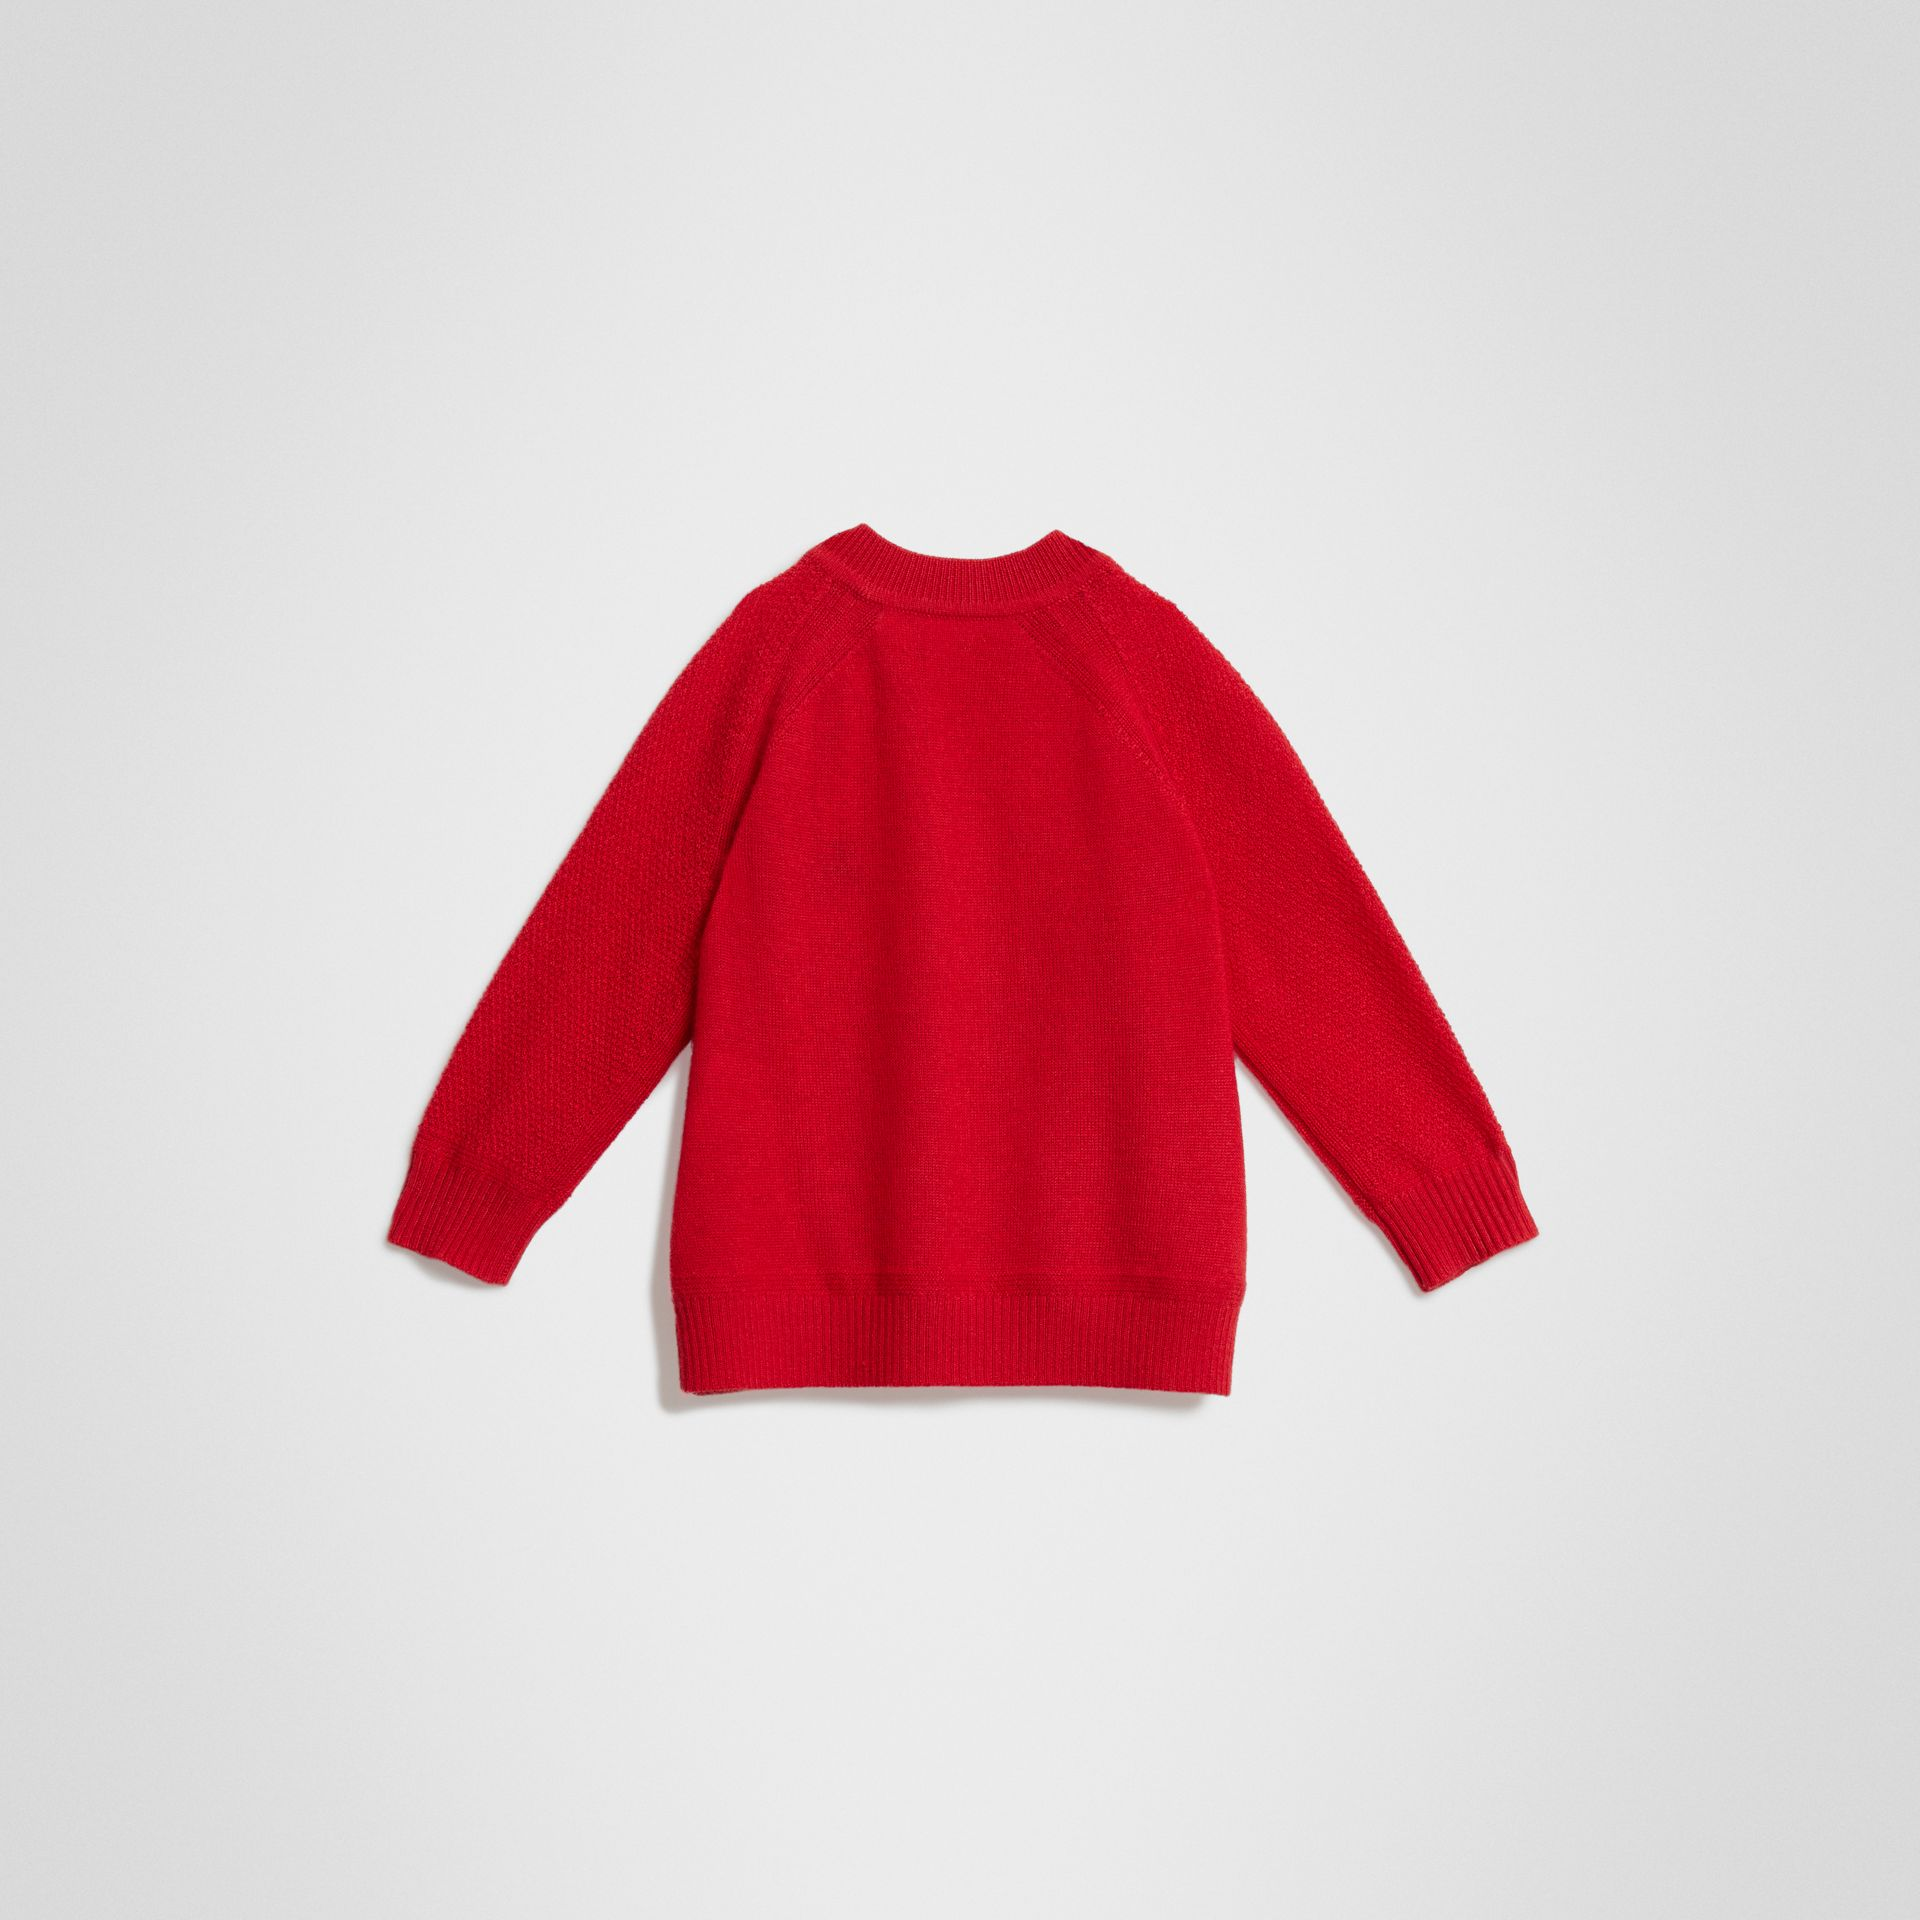 Contrast Motif Cashmere Sweater in Burgundy Red - Children | Burberry Singapore - gallery image 3